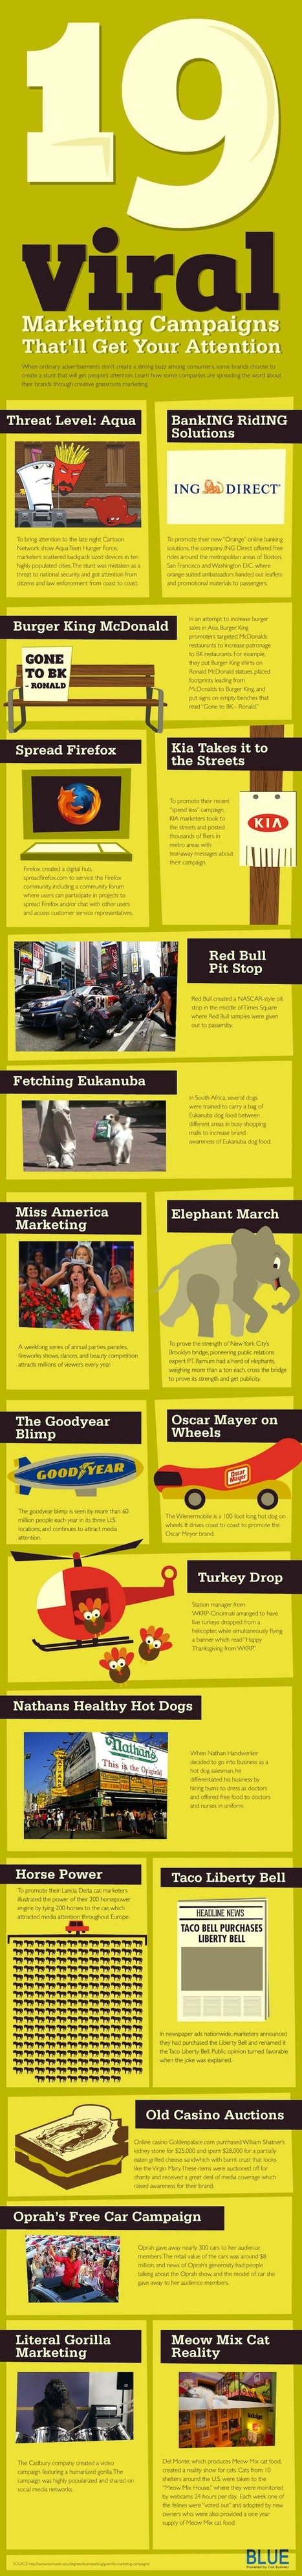 19 Viral Marketing Campaigns to Get Your Company Rocking on Top | All Infographics | Social Media Stuff | Scoop.it